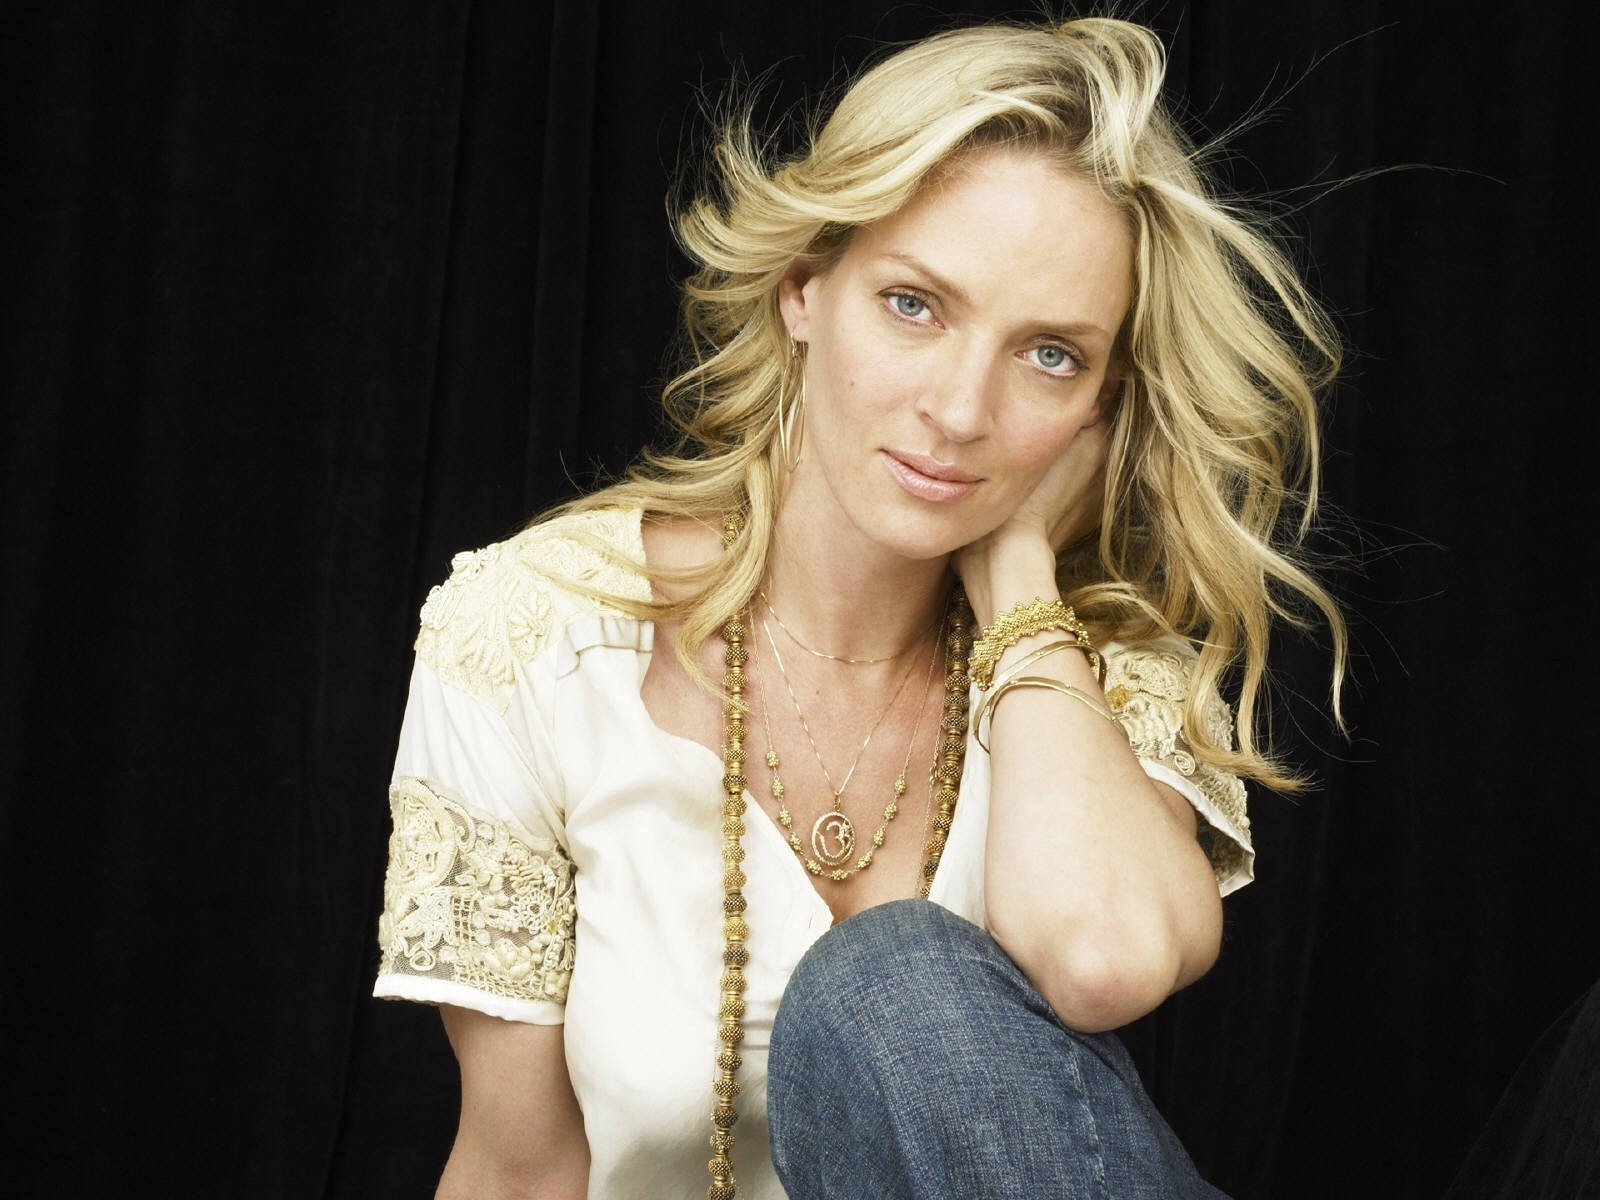 Wallpaper: Uma Thurman, icona di fascino e sexyness